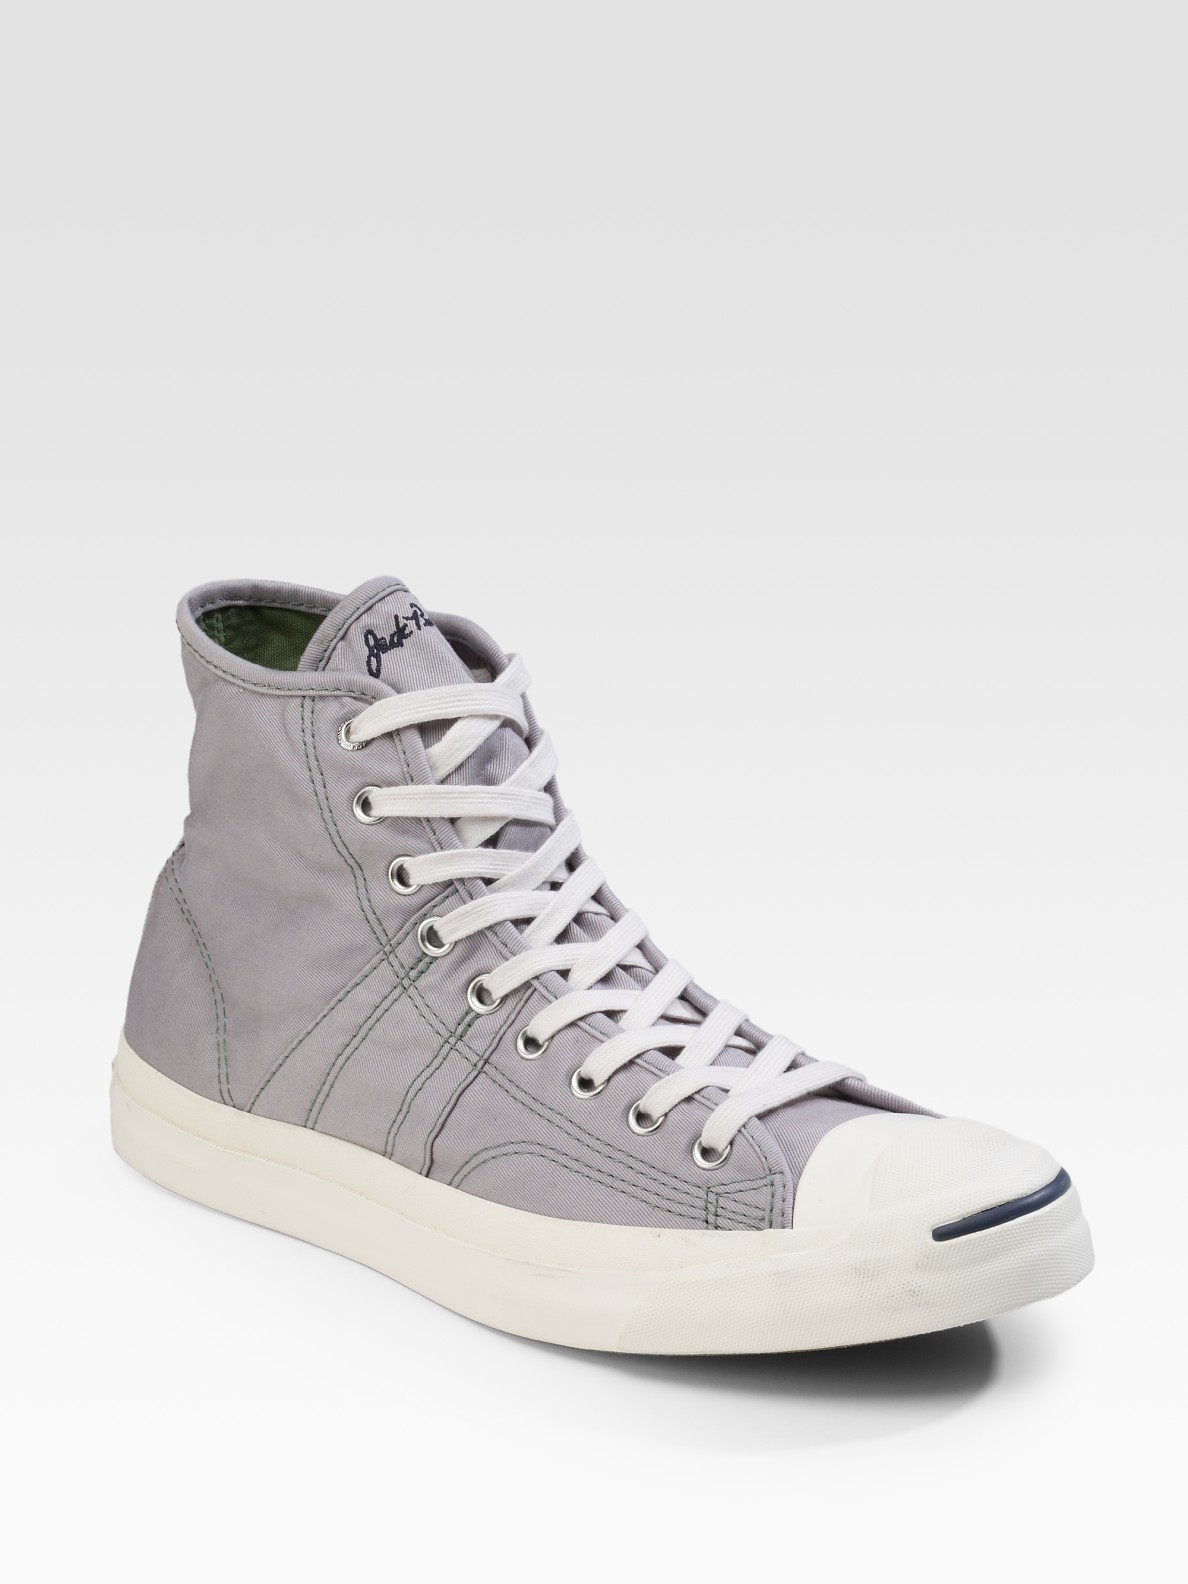 Converse jack purcell johnny high tops in gray for men - Graue converse ...